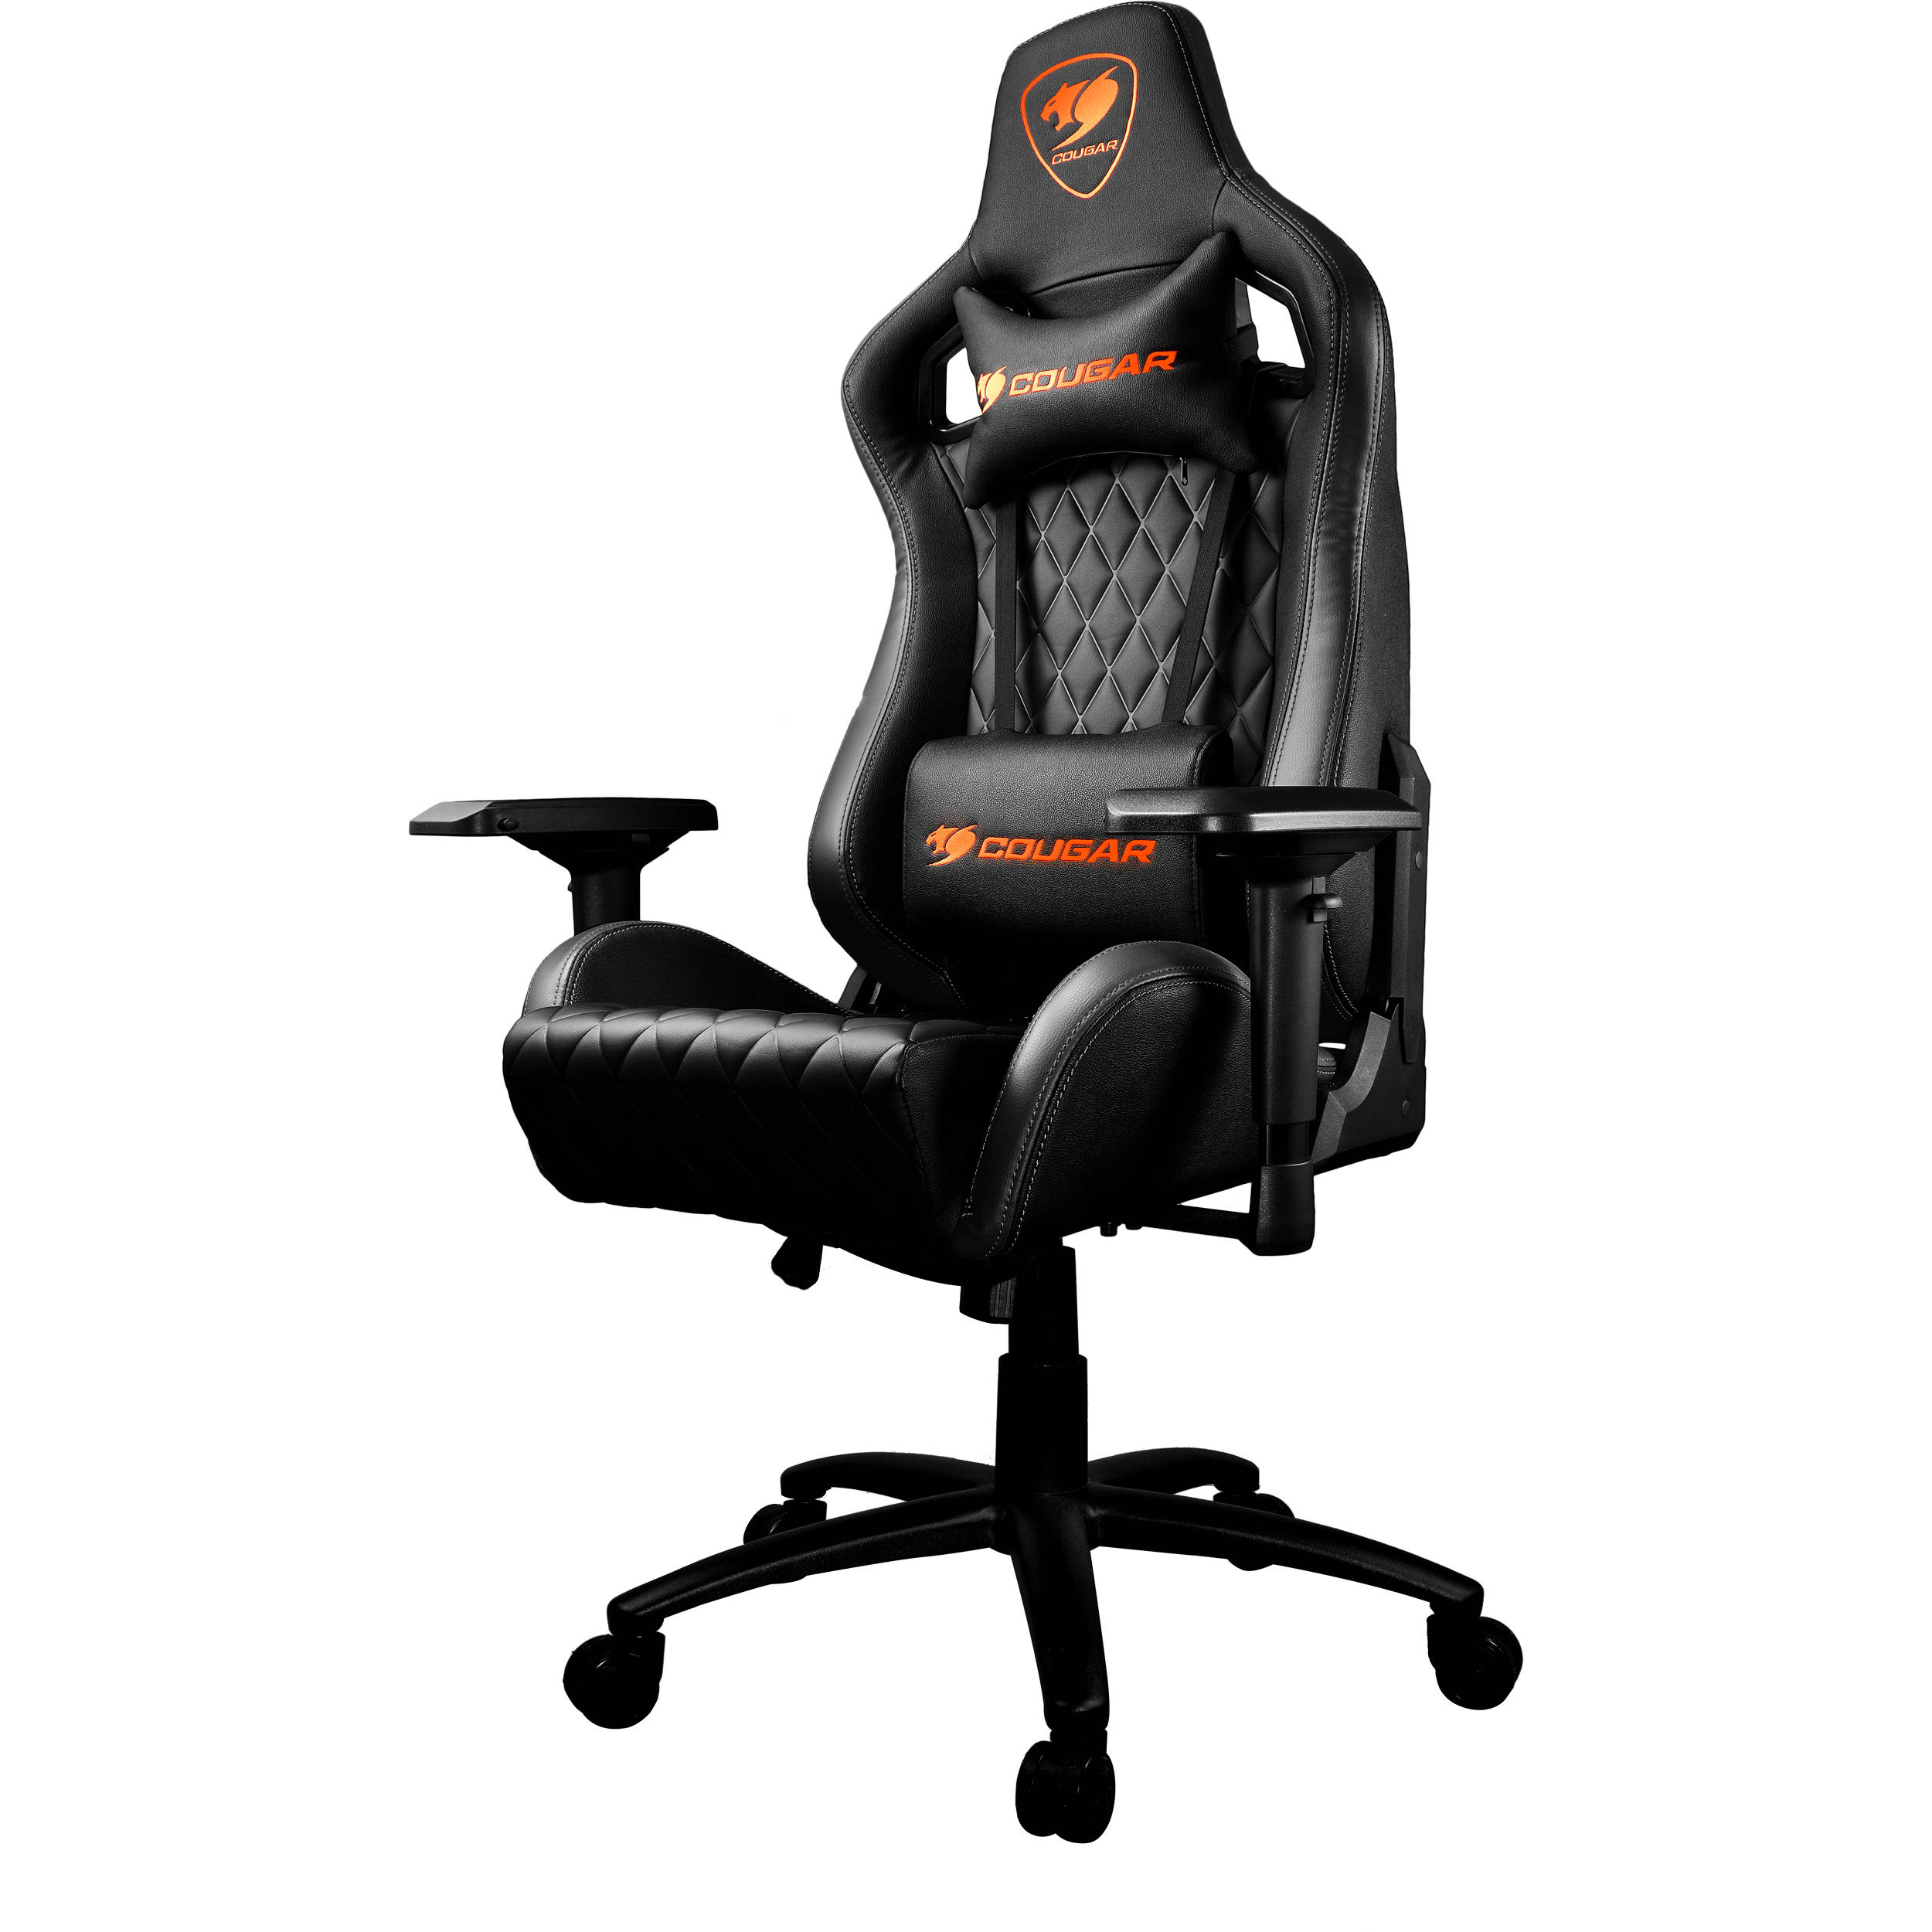 Amazing Cougar Armor S Gaming Chair Black Onthecornerstone Fun Painted Chair Ideas Images Onthecornerstoneorg